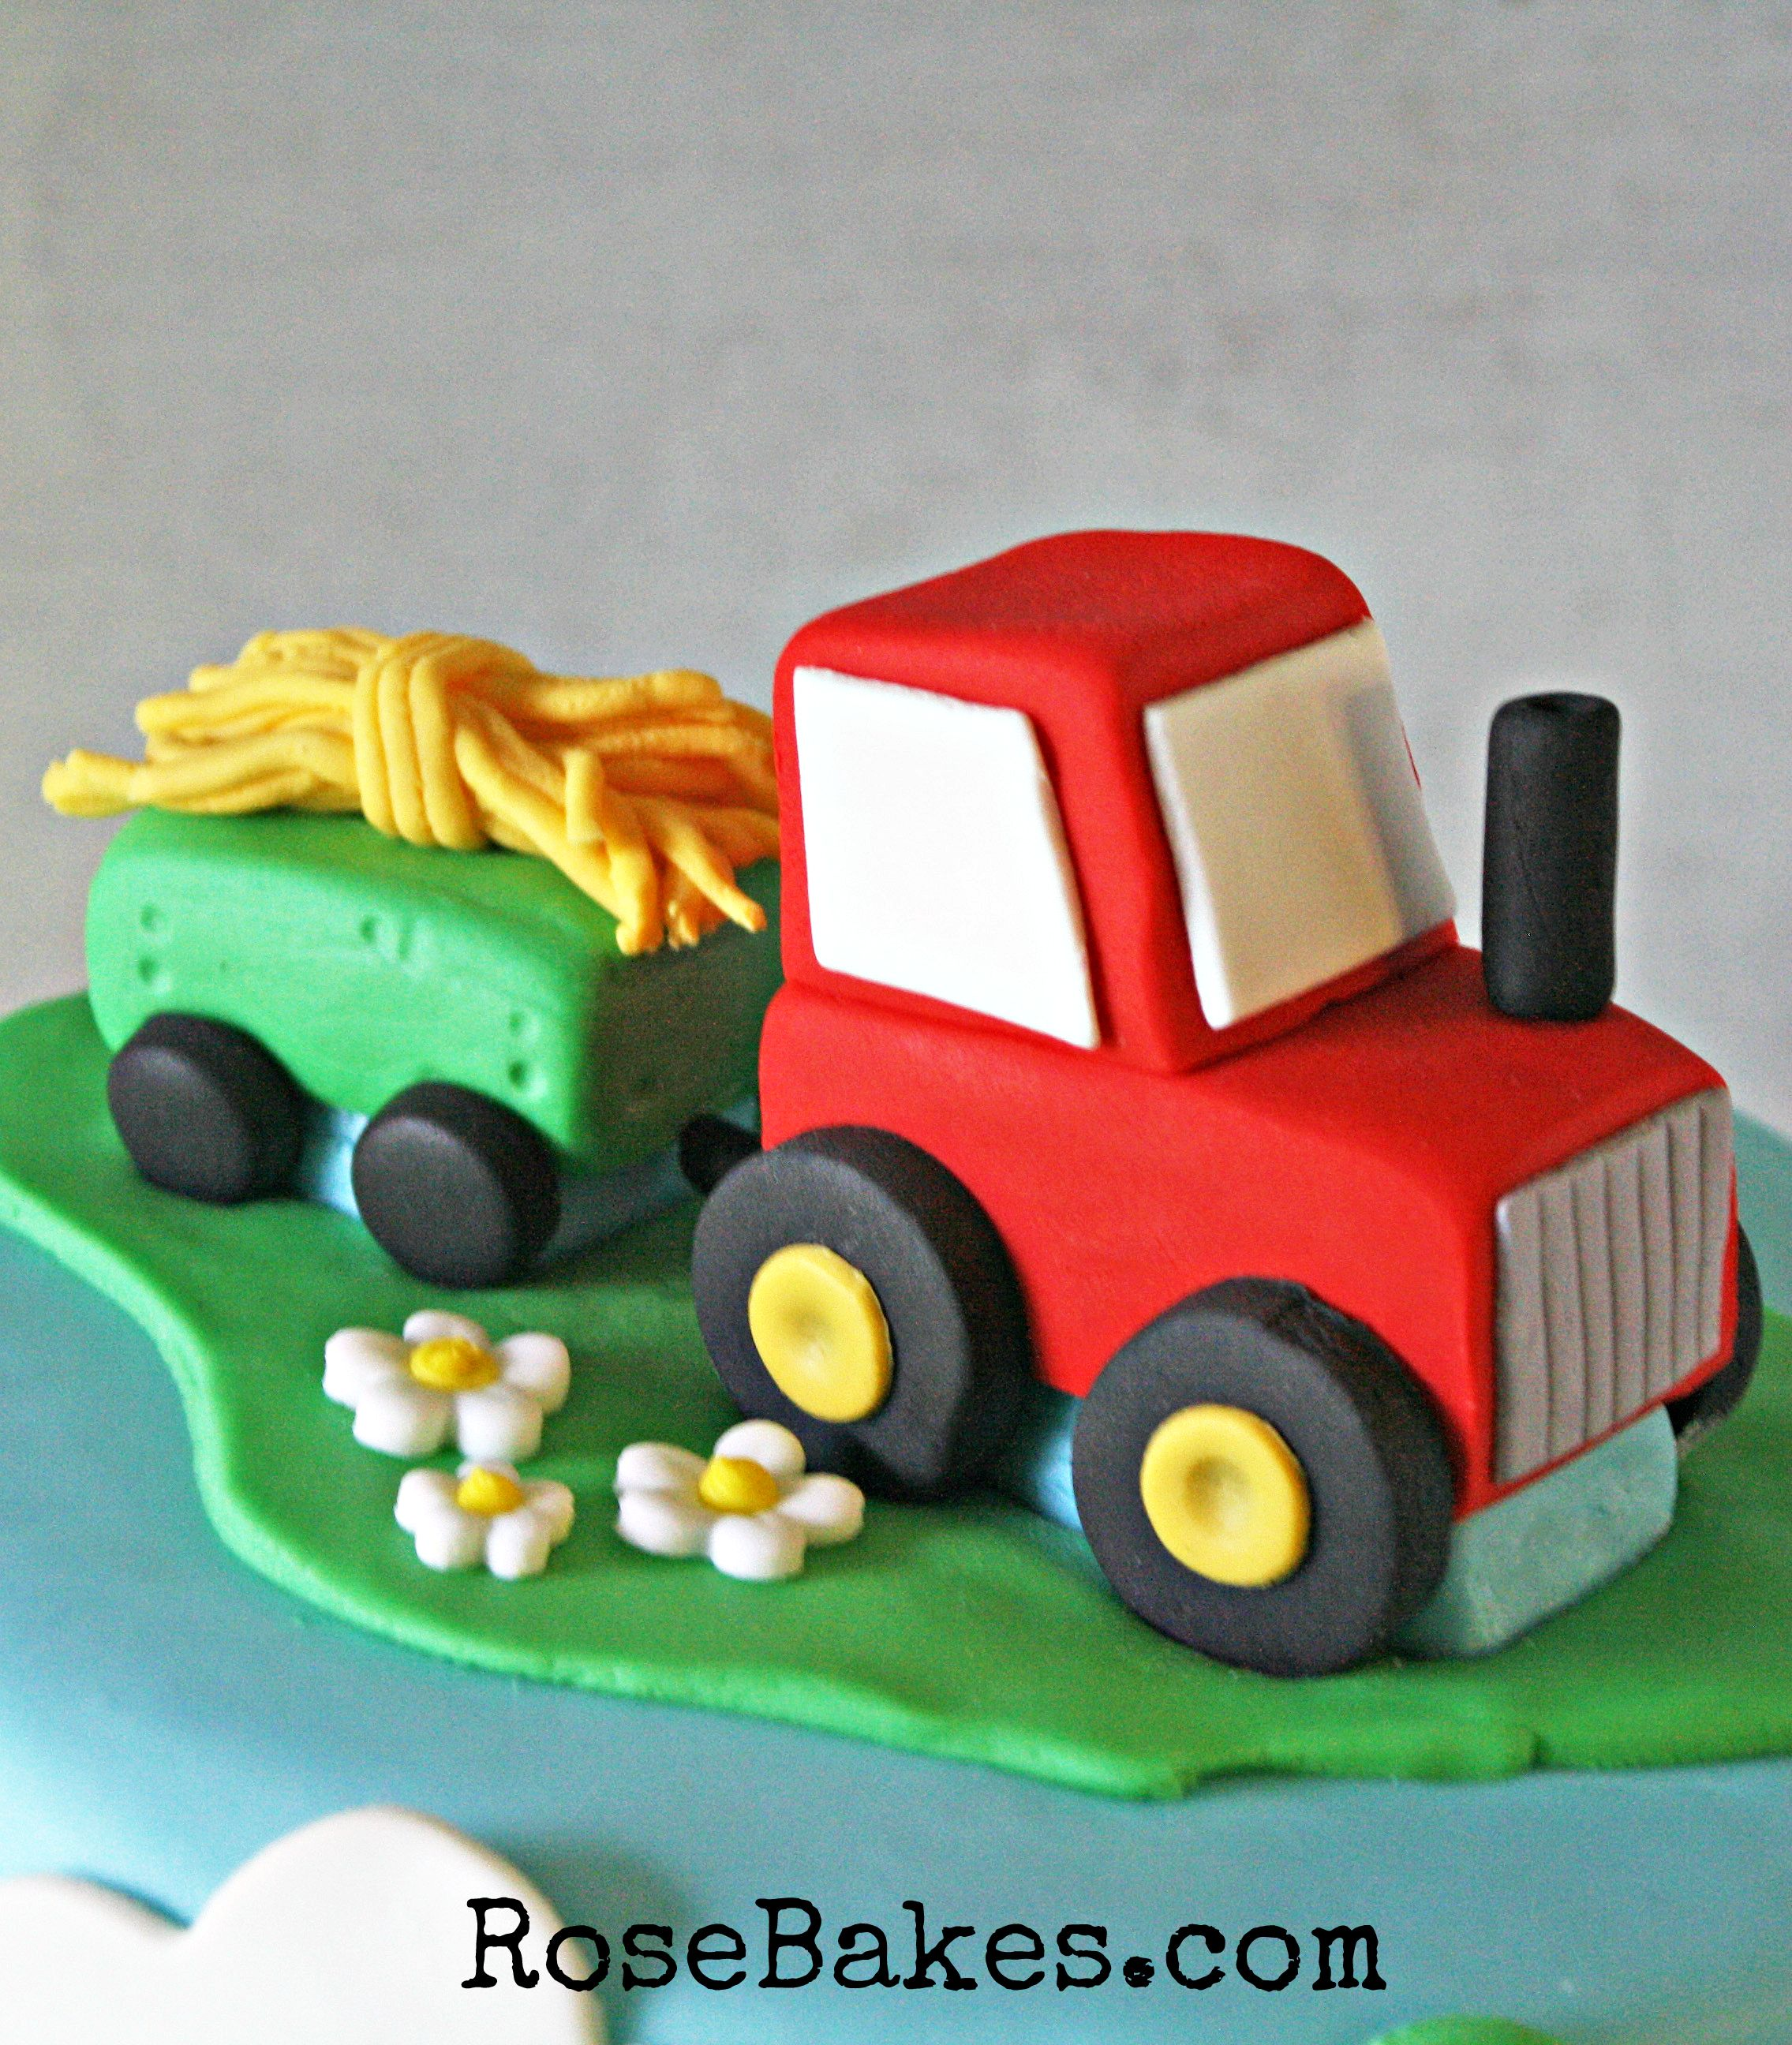 How To Make A Tractor Cake Topper Backen Kindergeburtstag Kuchen Kindergeburtstag Und Traktor Kuchen